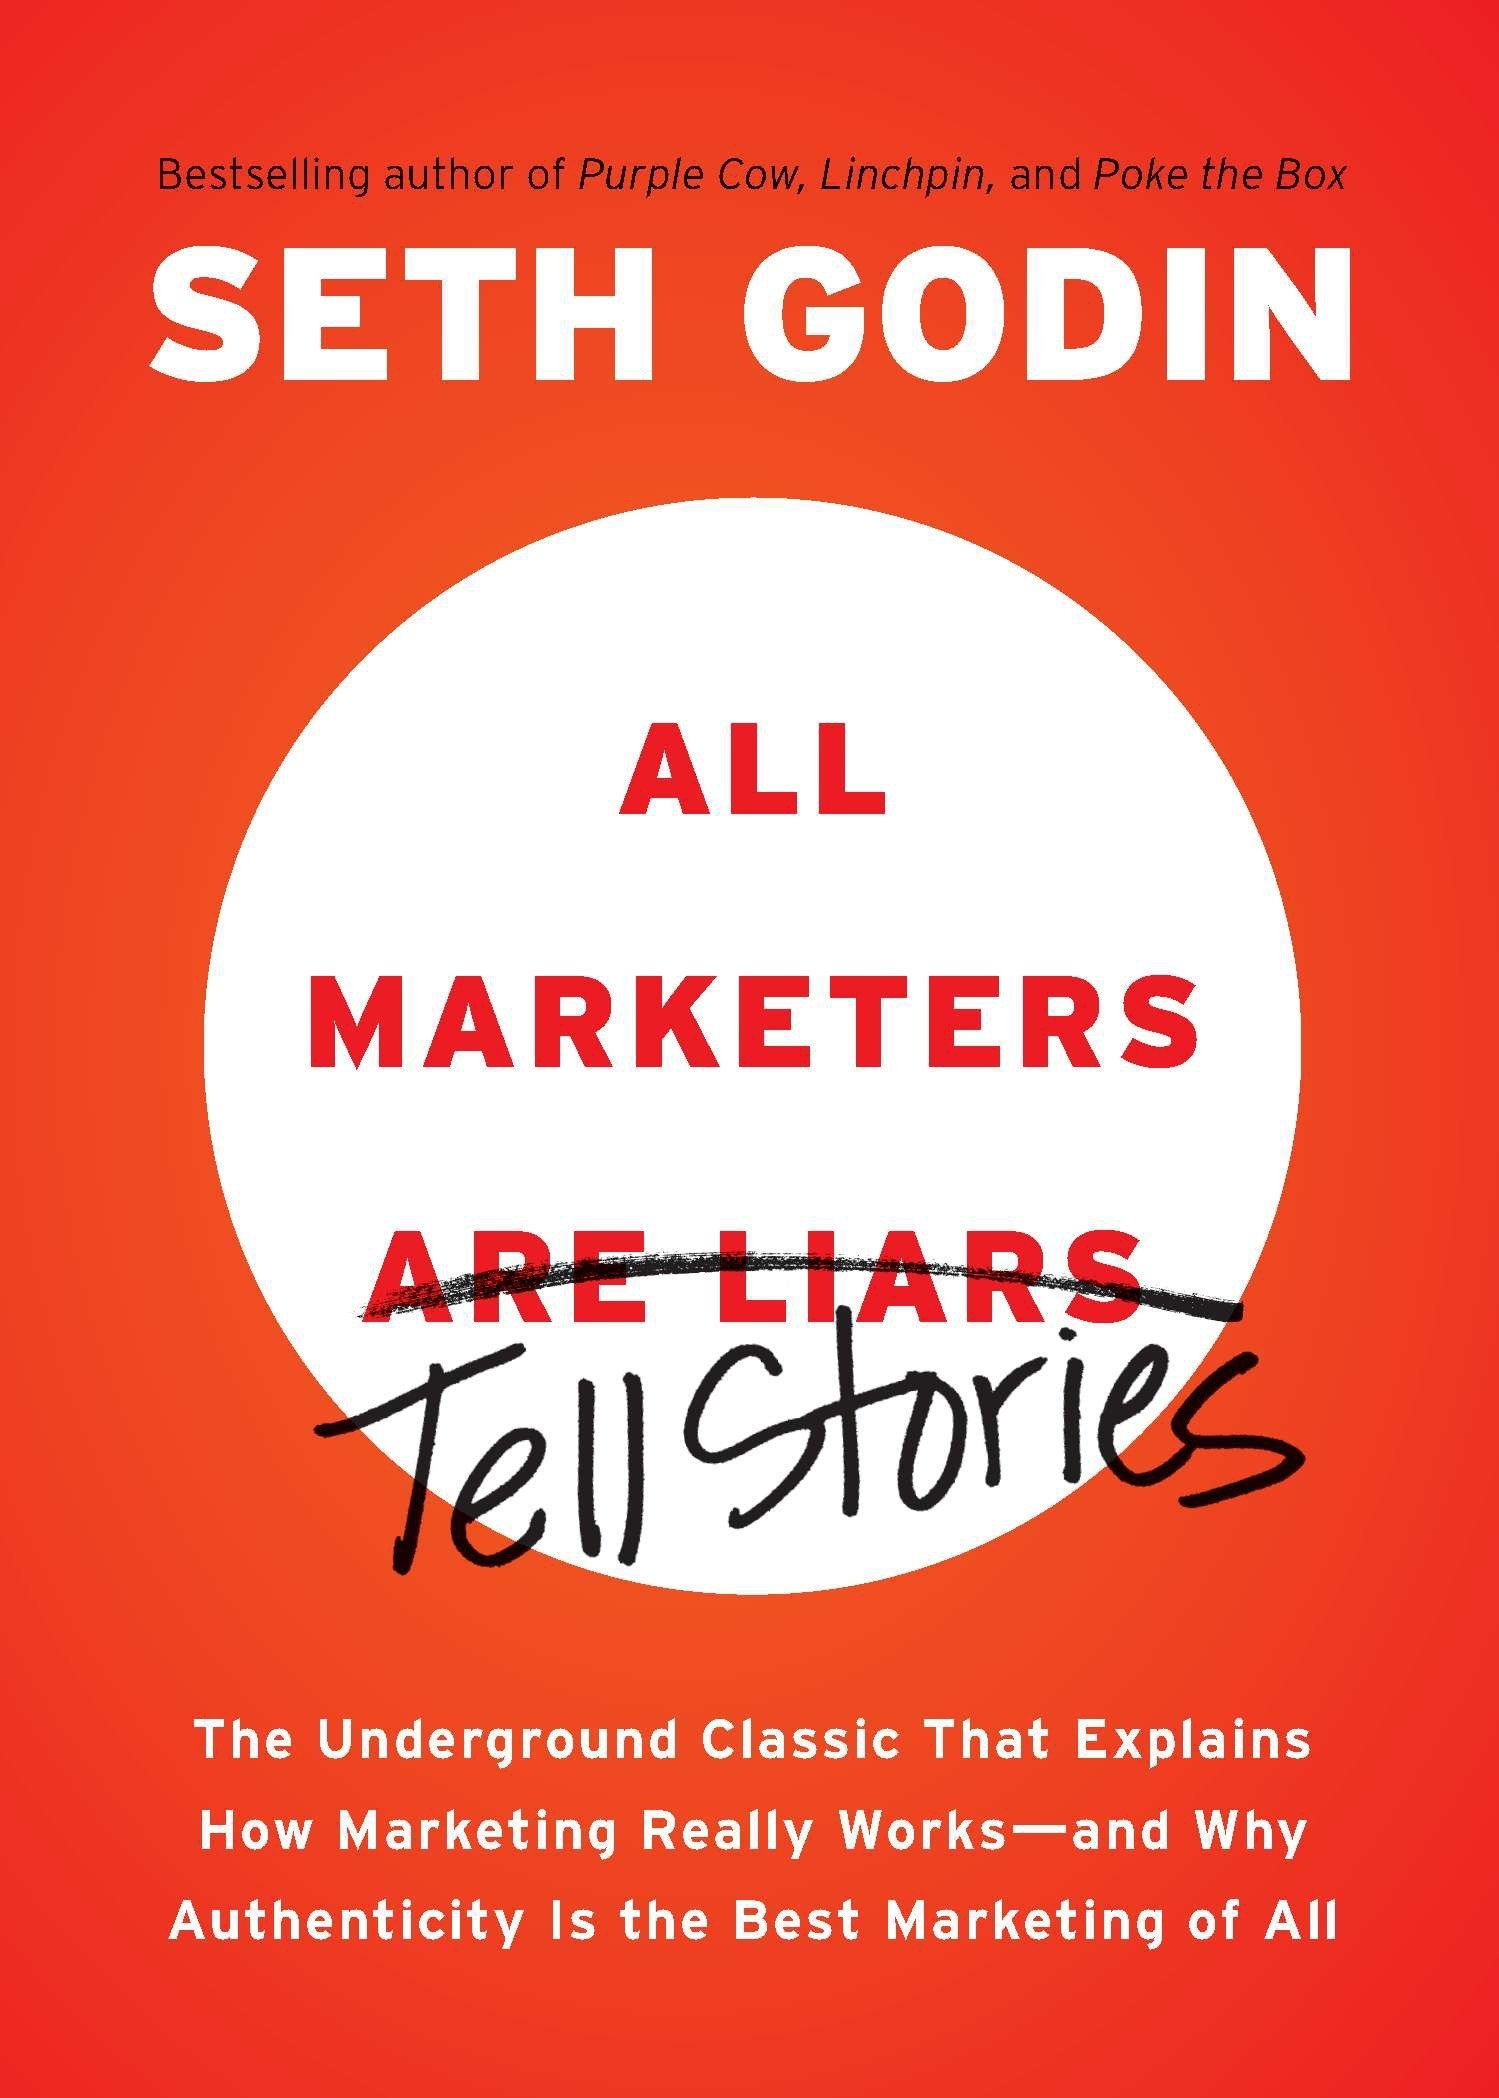 All Marketers Are Liars: The Power of Telling Authentic Stories in a Low-Trust World - Seth Godin - reviews for audiobook - quotes, rating, reviews, where to buy